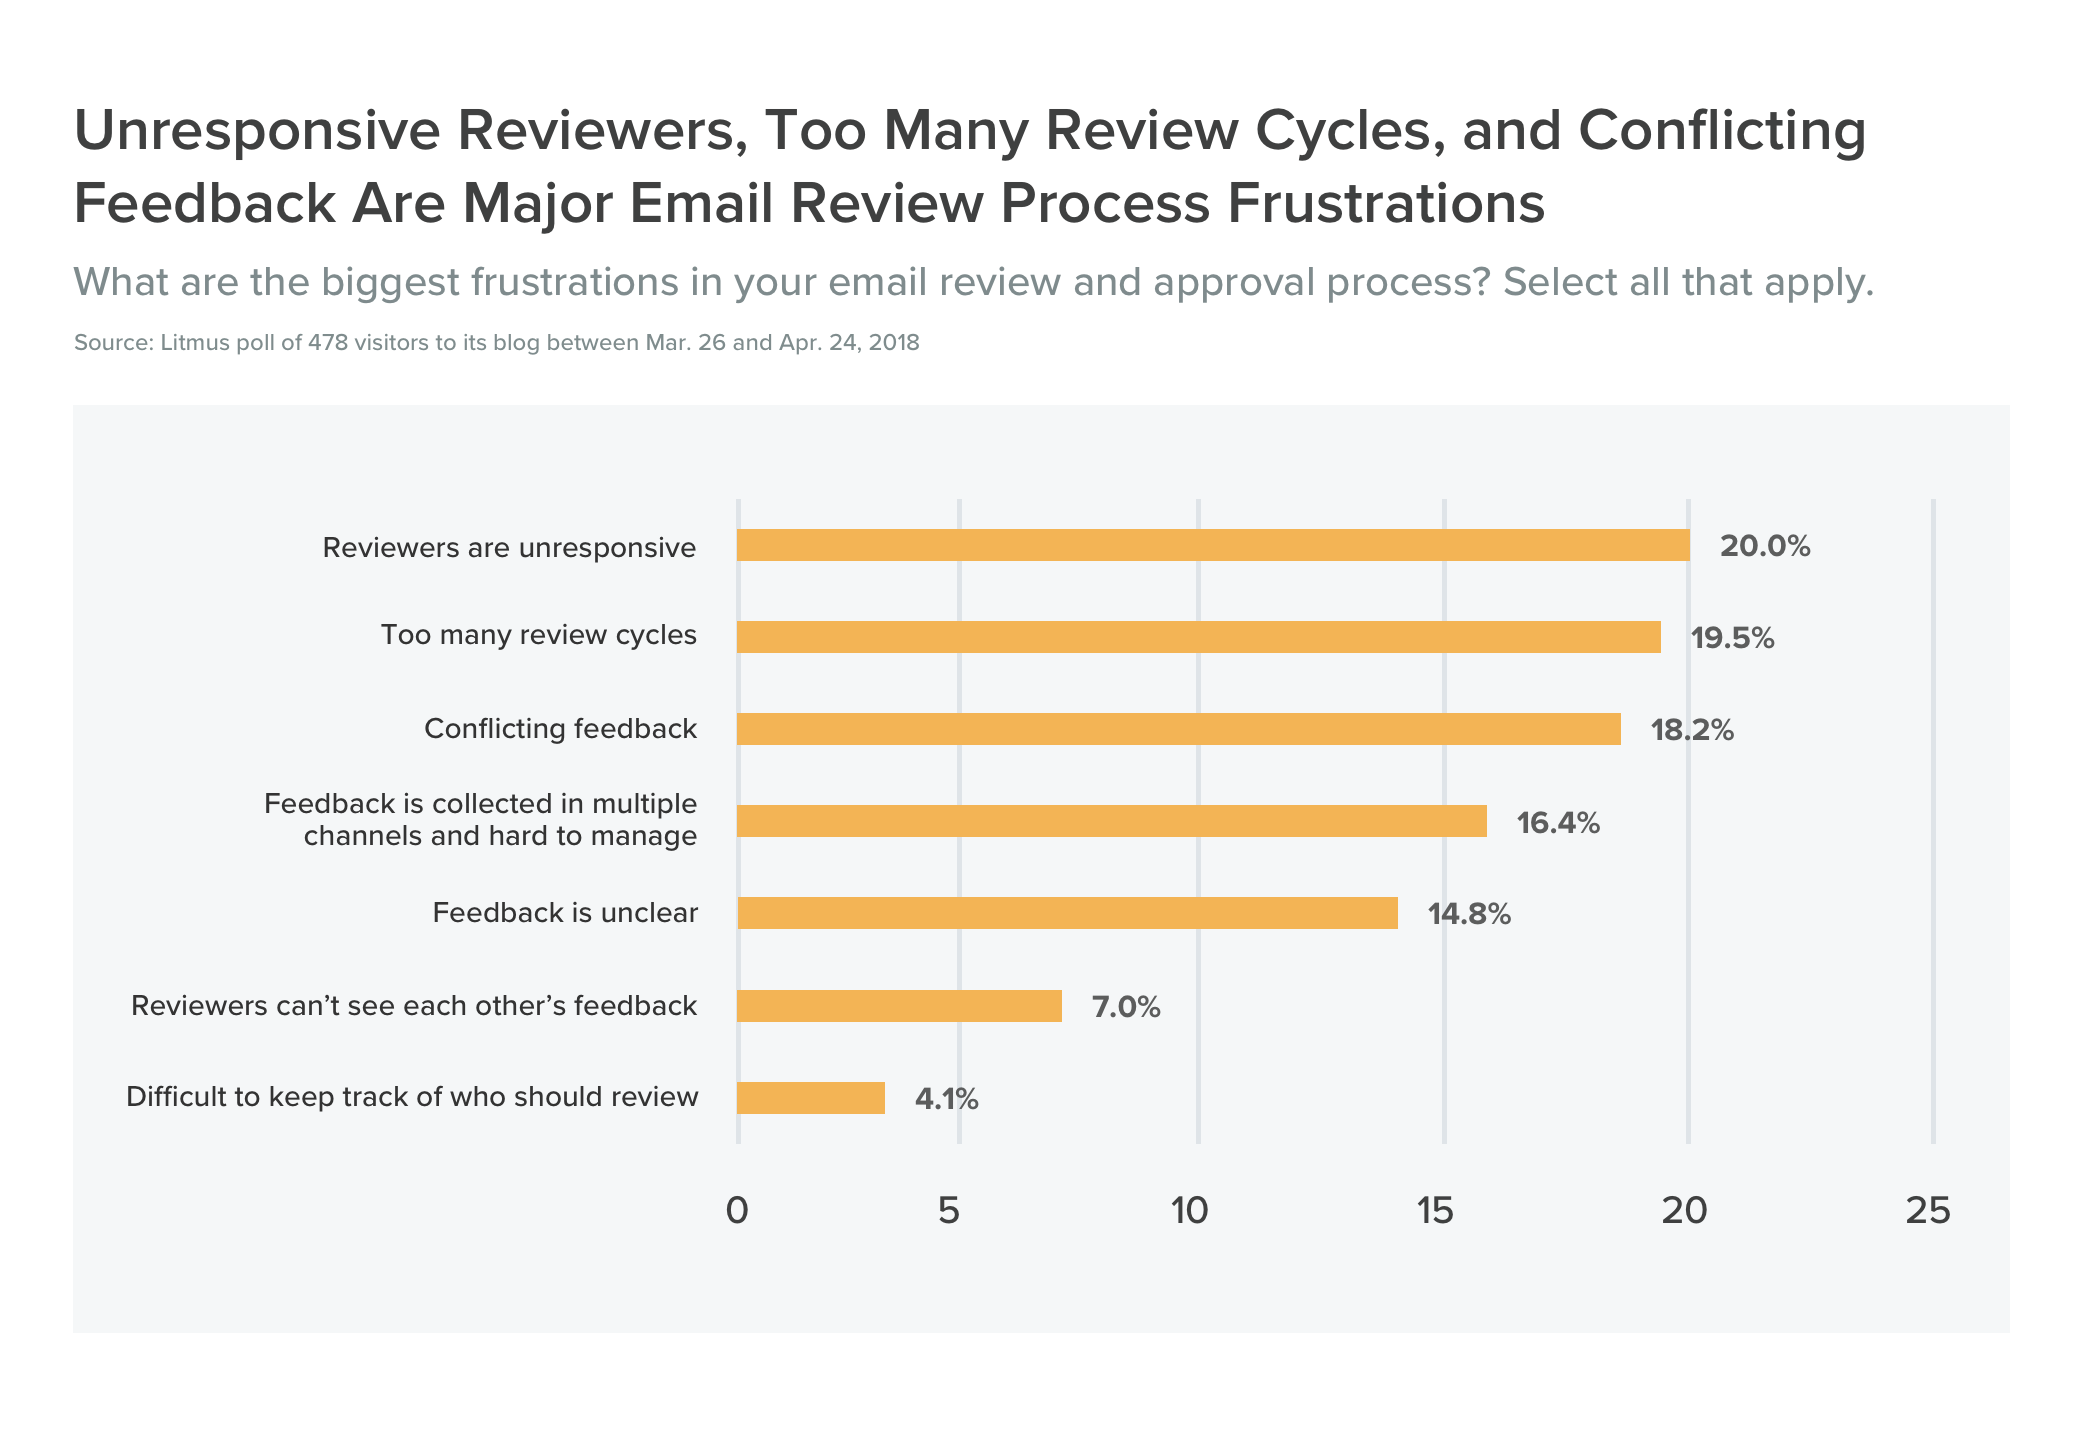 Unresponsive Reviewers Too Many Review Cycles and Conflicting Feedback Are Major Email Review Process Frustrations